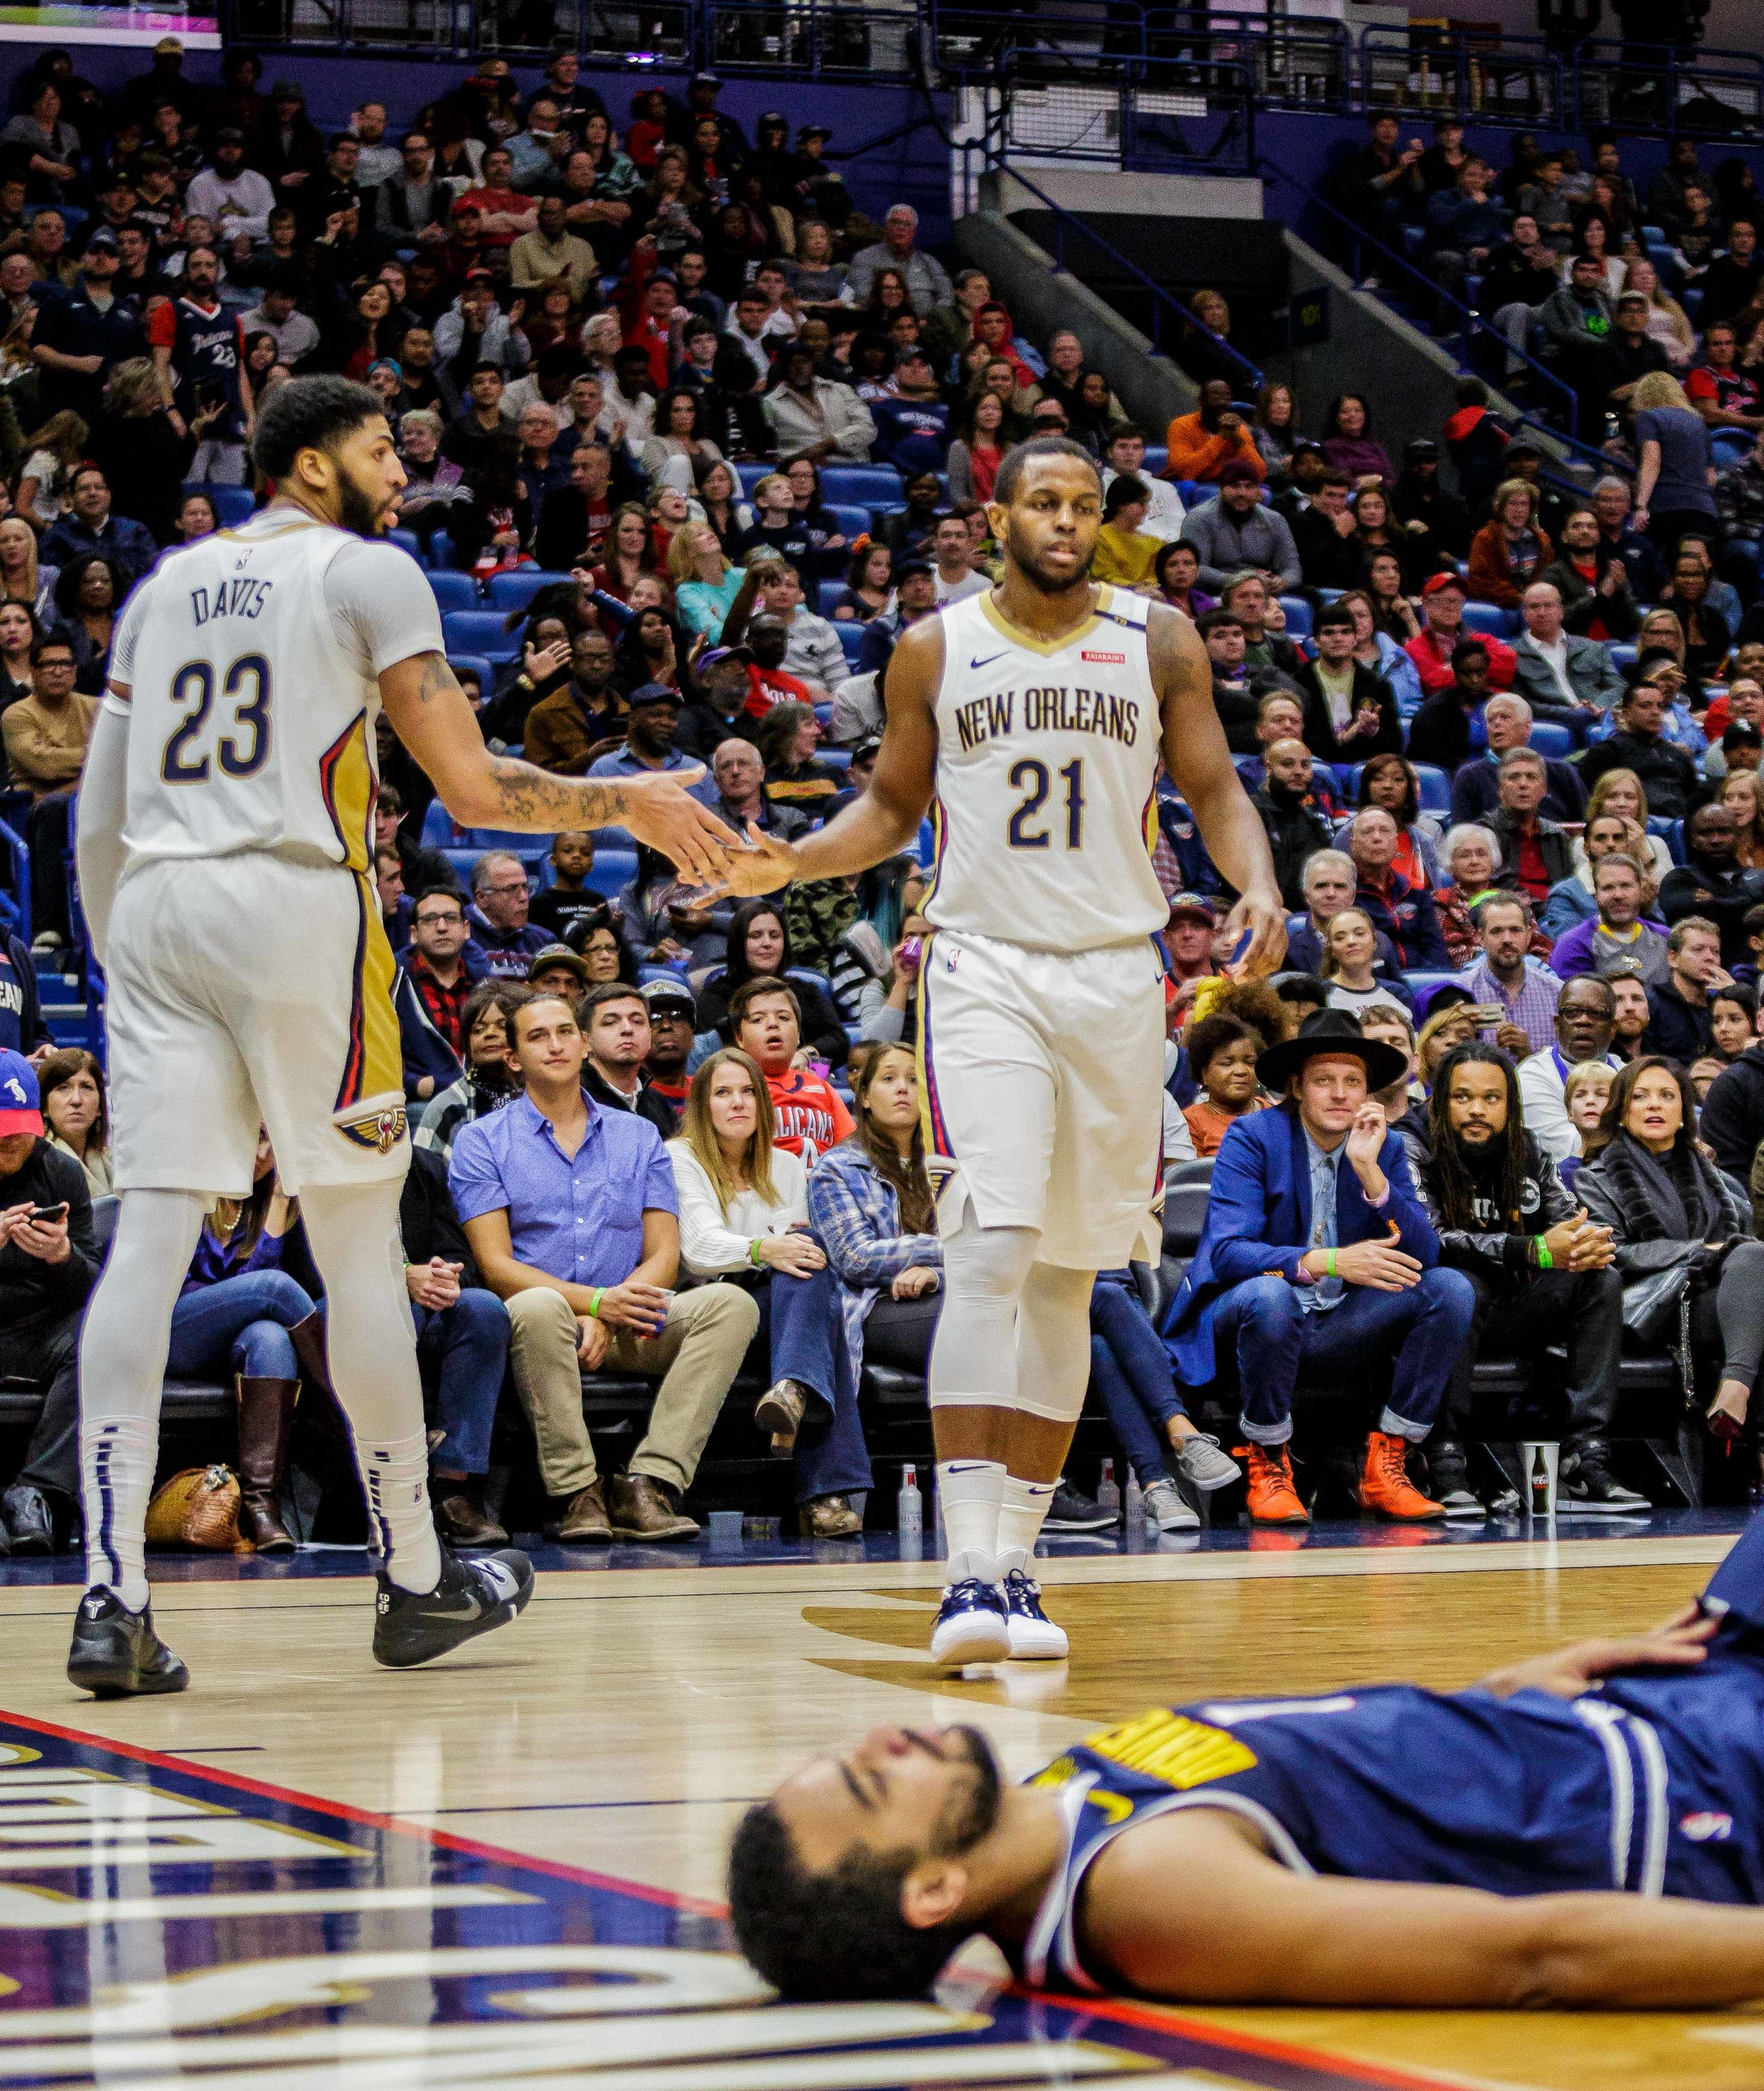 Denver Nuggets forward Trey Lyles (7) lays on the floor after unsuccessfully defending New OrleansPelicansforward Anthony Davis (23) who shakes hands with Darius Miller (21) during the second half of an NBA basketball game in the Smoothie King Center in New Orleans, La. Monday, Nov. 17, 2018. ThePelicanswon, 125-115.